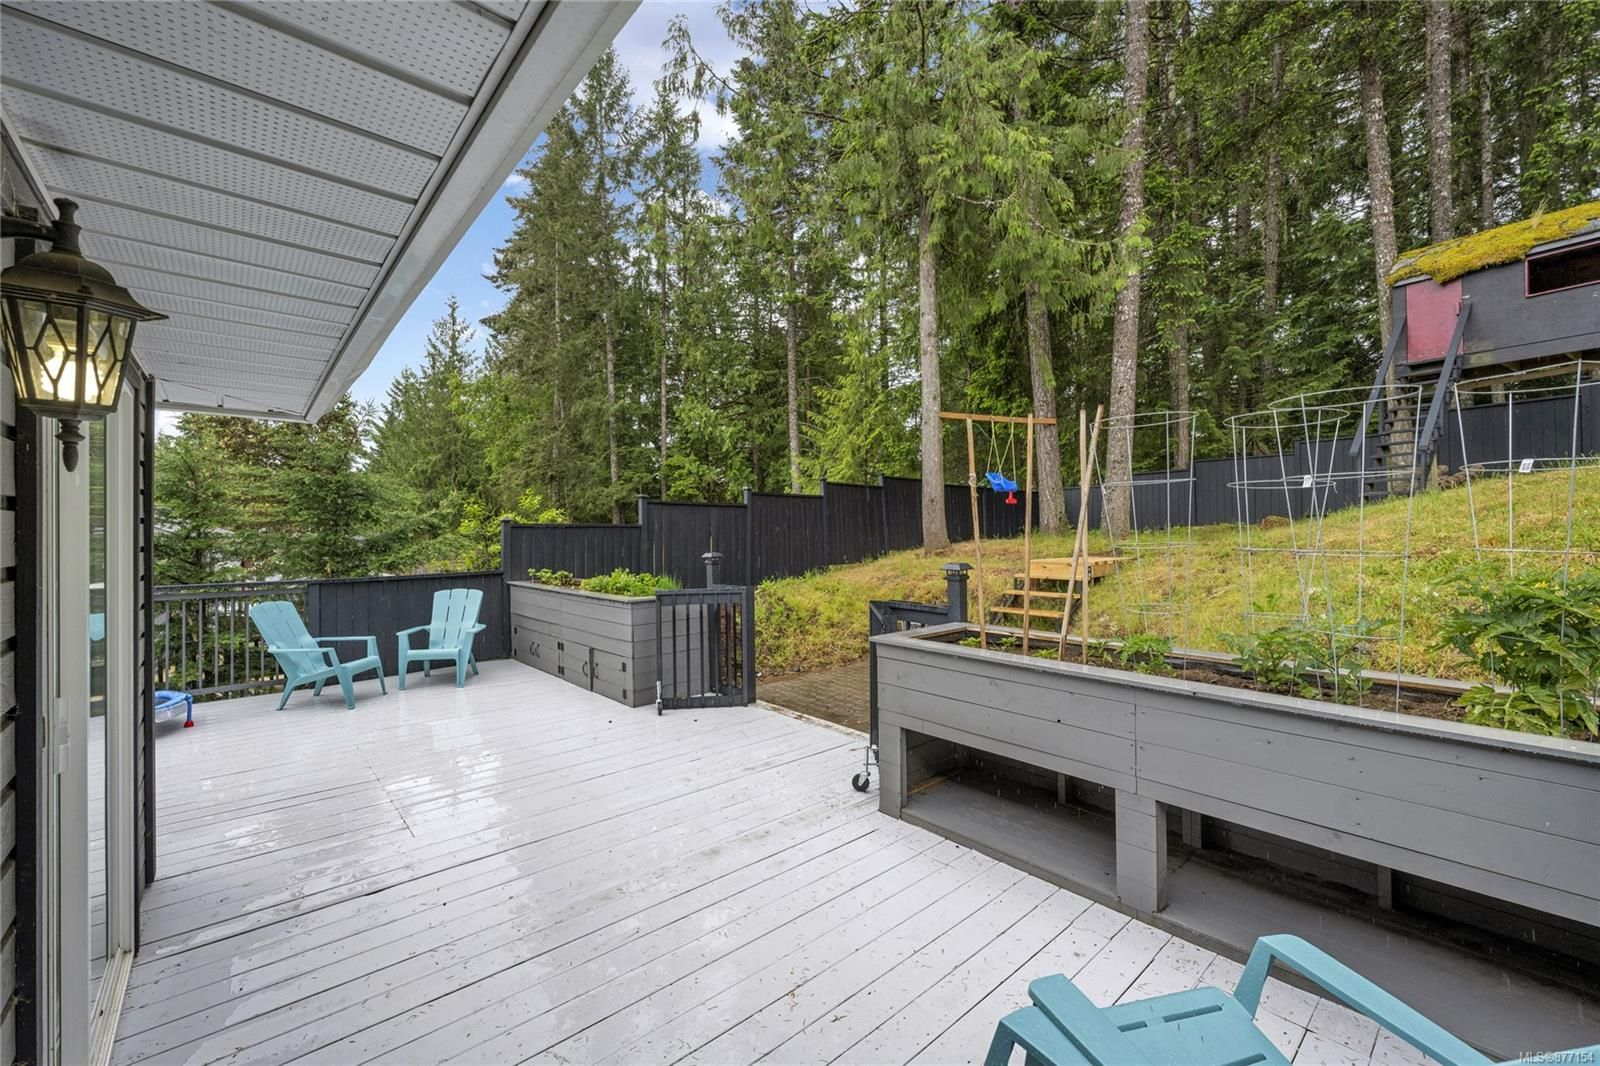 Photo 11: Photos: 2376 Terrace Rd in : ML Shawnigan House for sale (Malahat & Area)  : MLS®# 877154